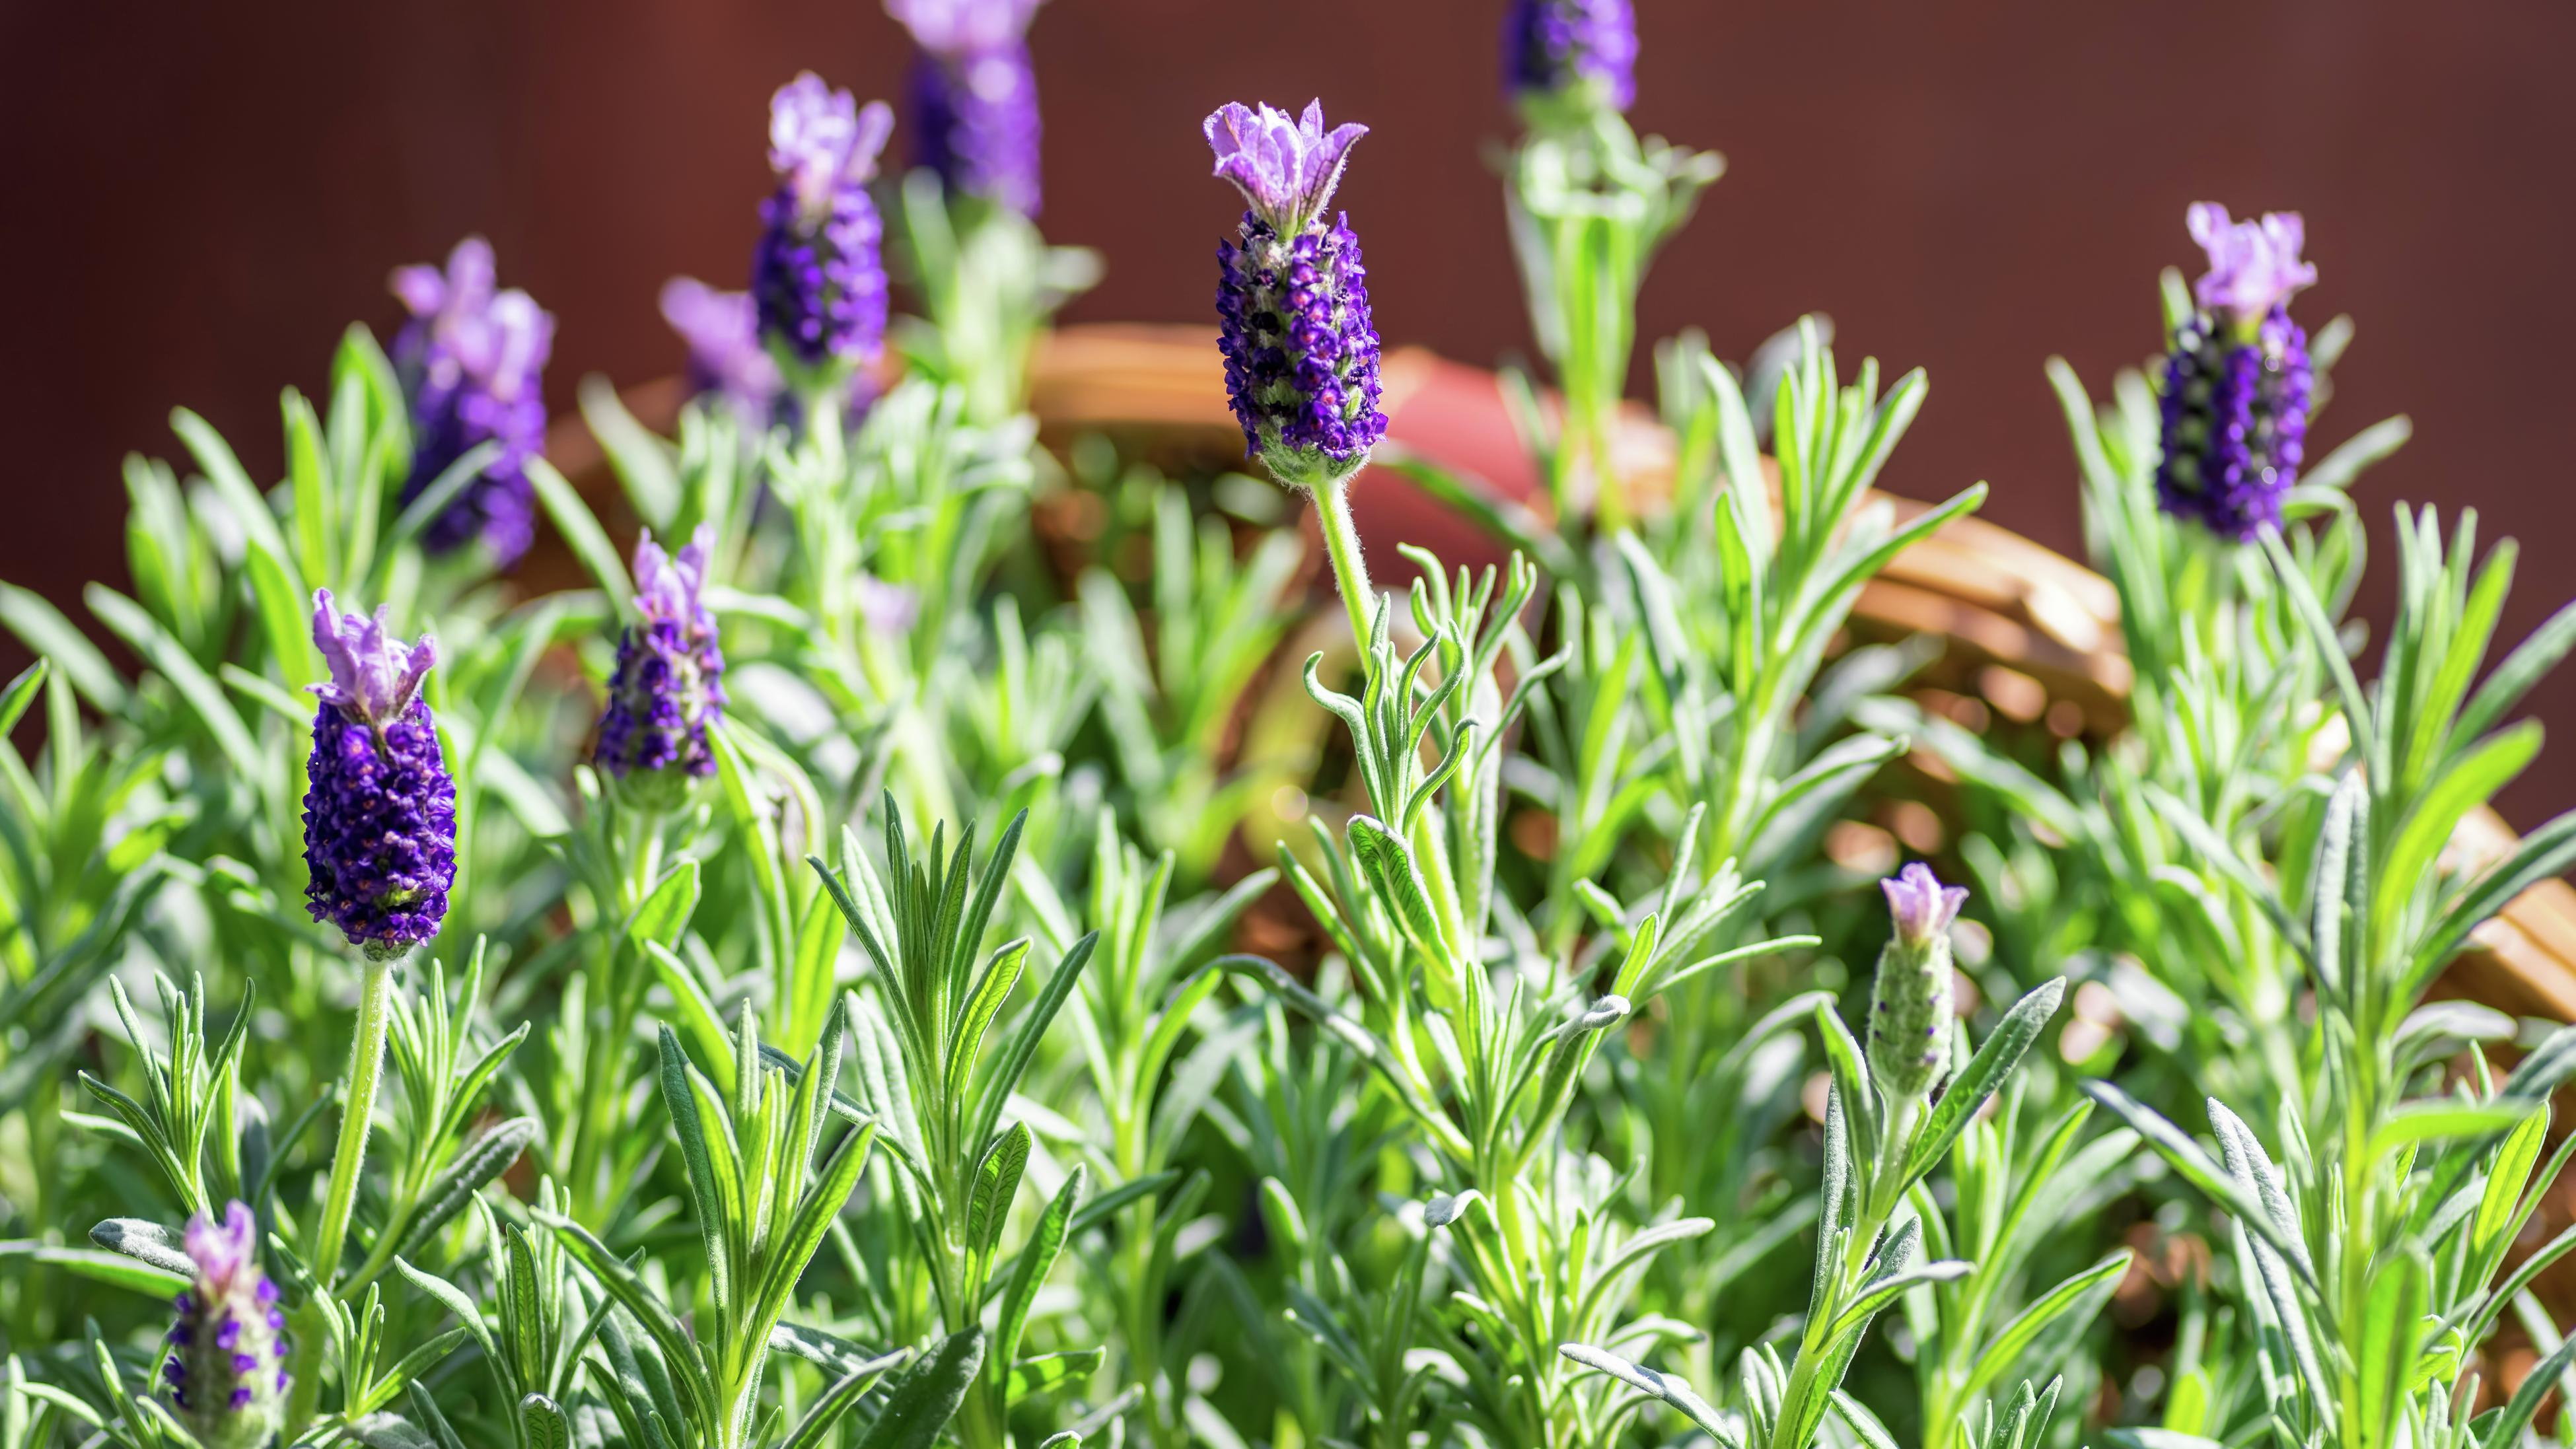 Lavender growing in a terracotta planter